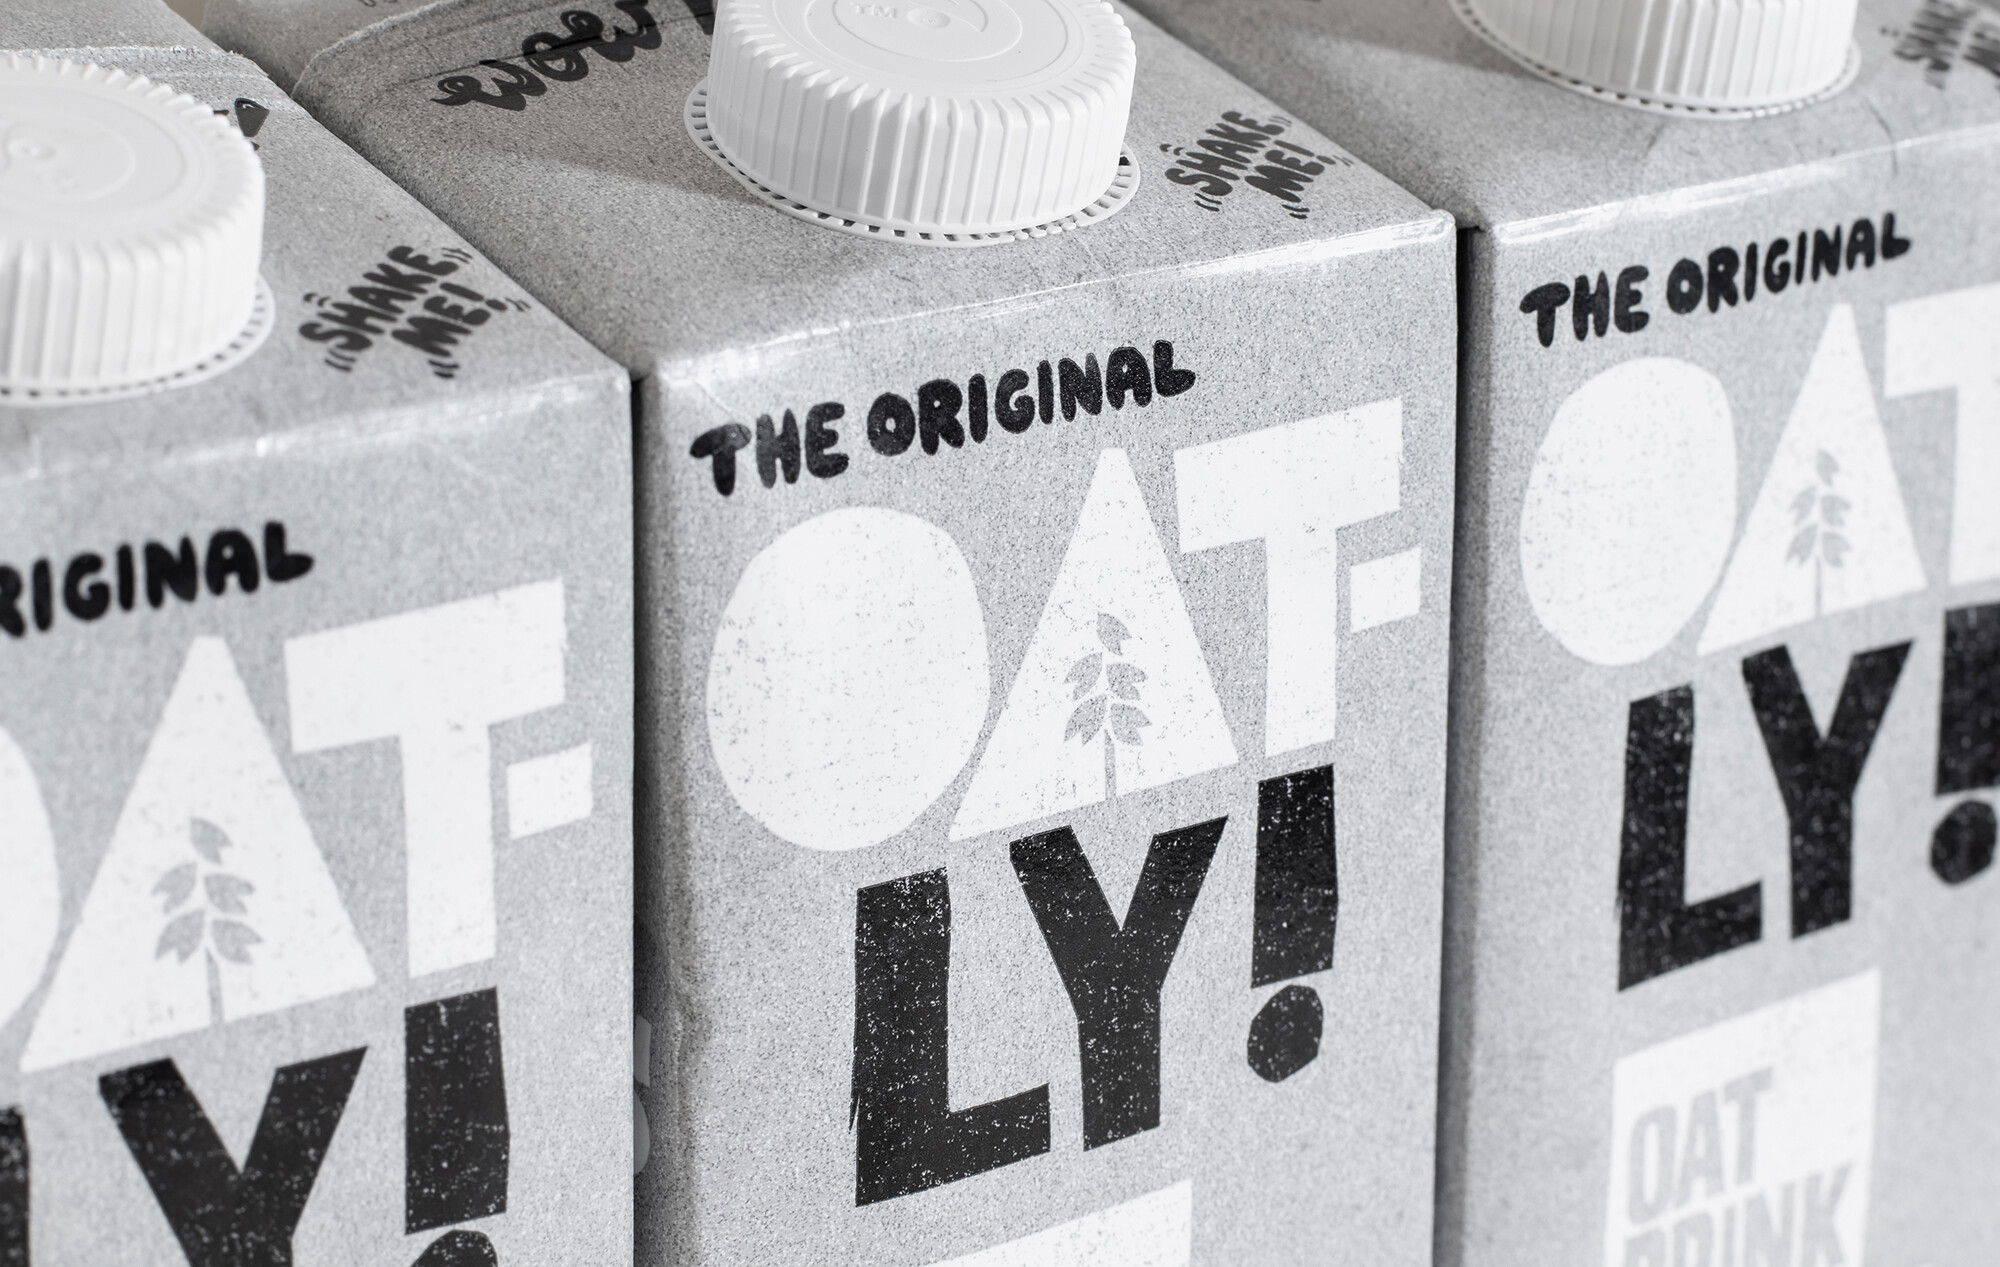 Oatly stock falls more than 9% after short seller attacks company's practices